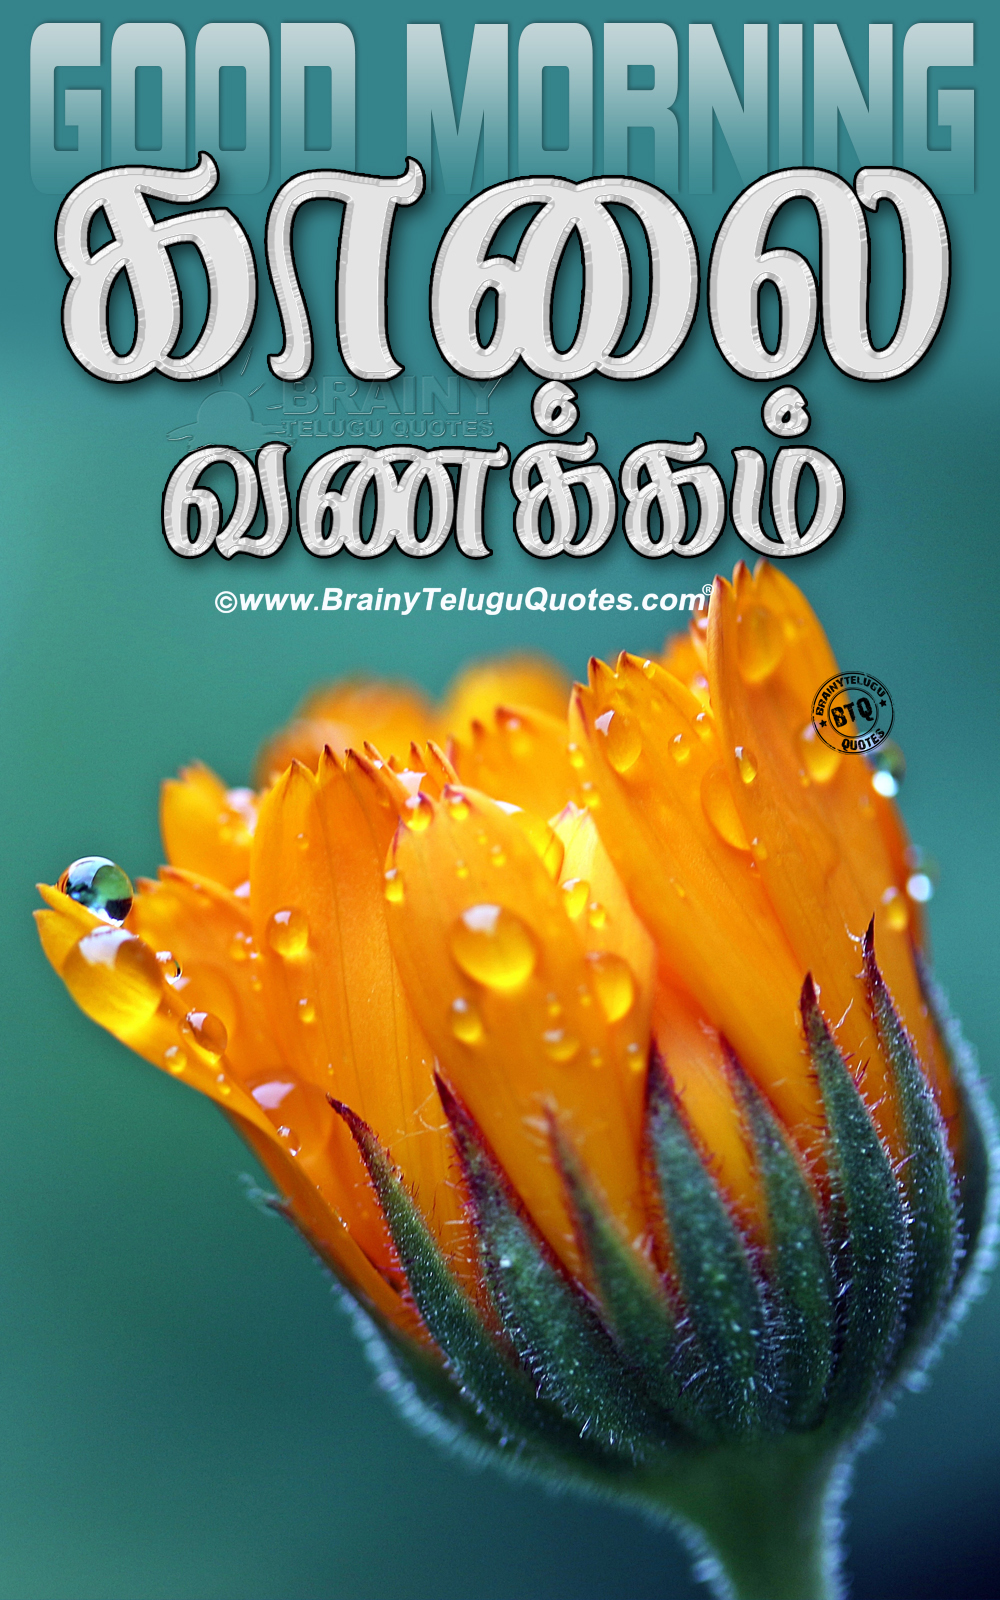 Good Morning Quotes In Tamil With Images Download The Christmas Tree